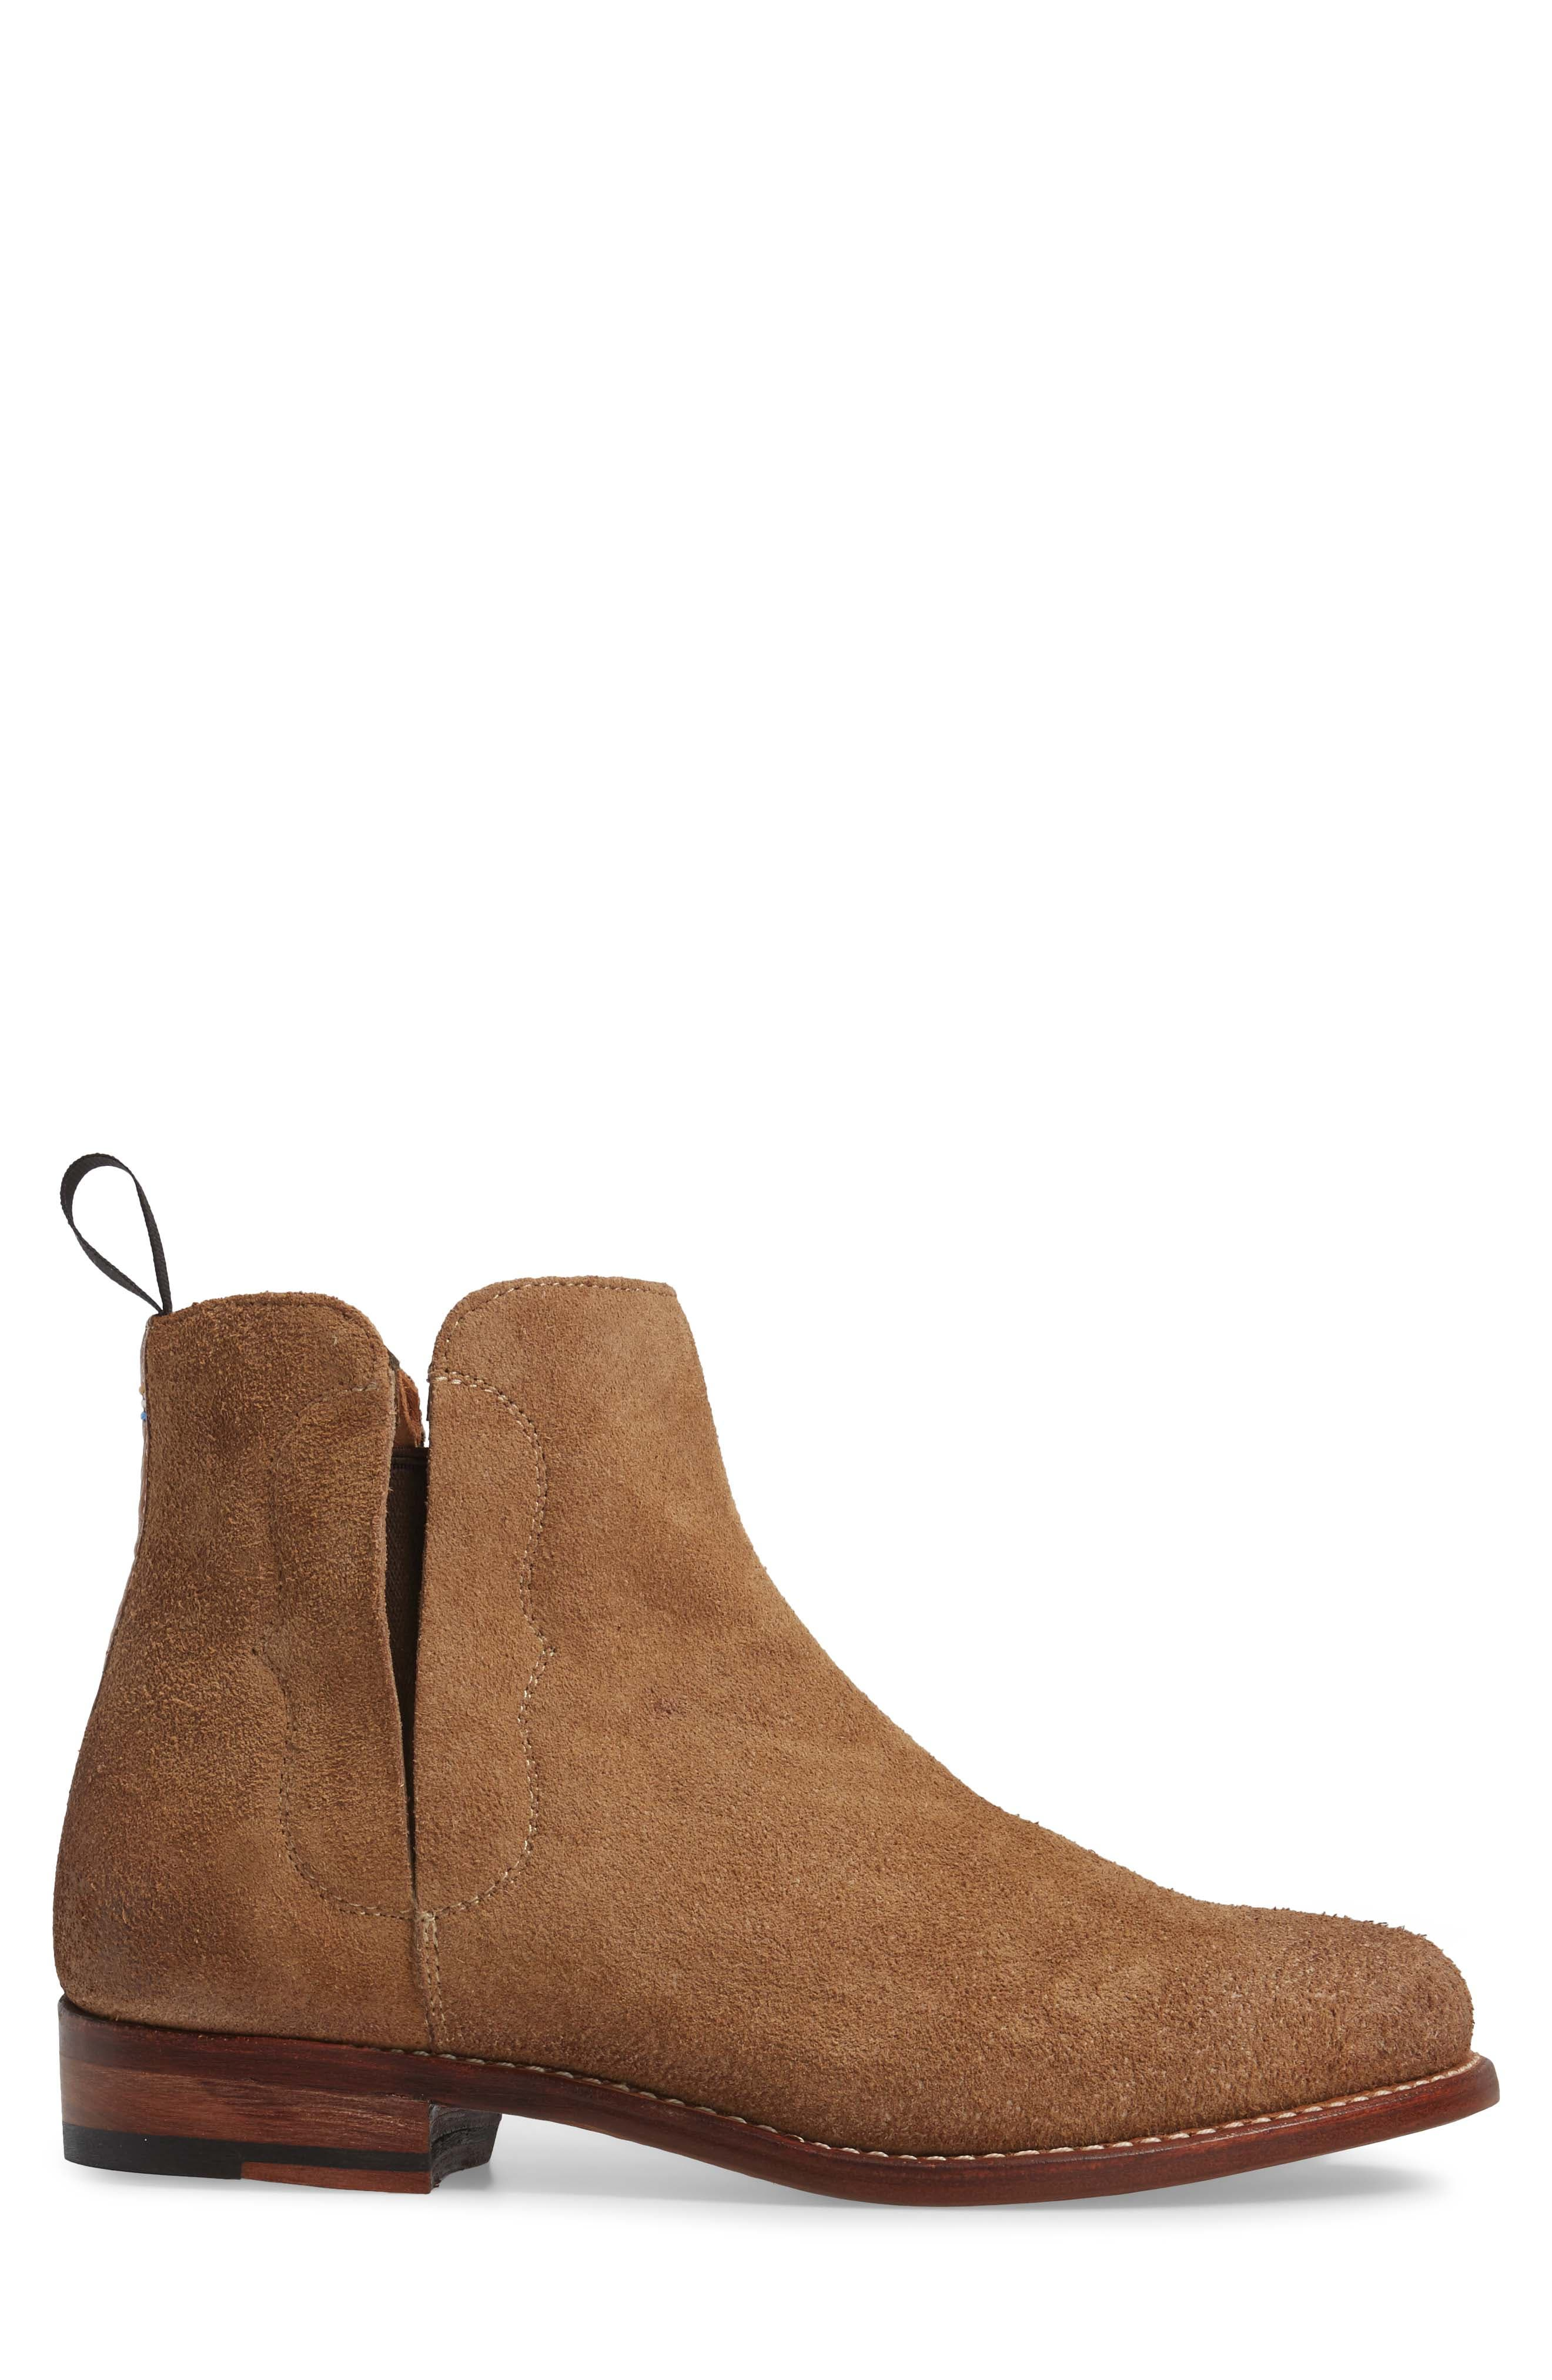 Ariat Maxwell Chelsea Boot,                             Alternate thumbnail 3, color,